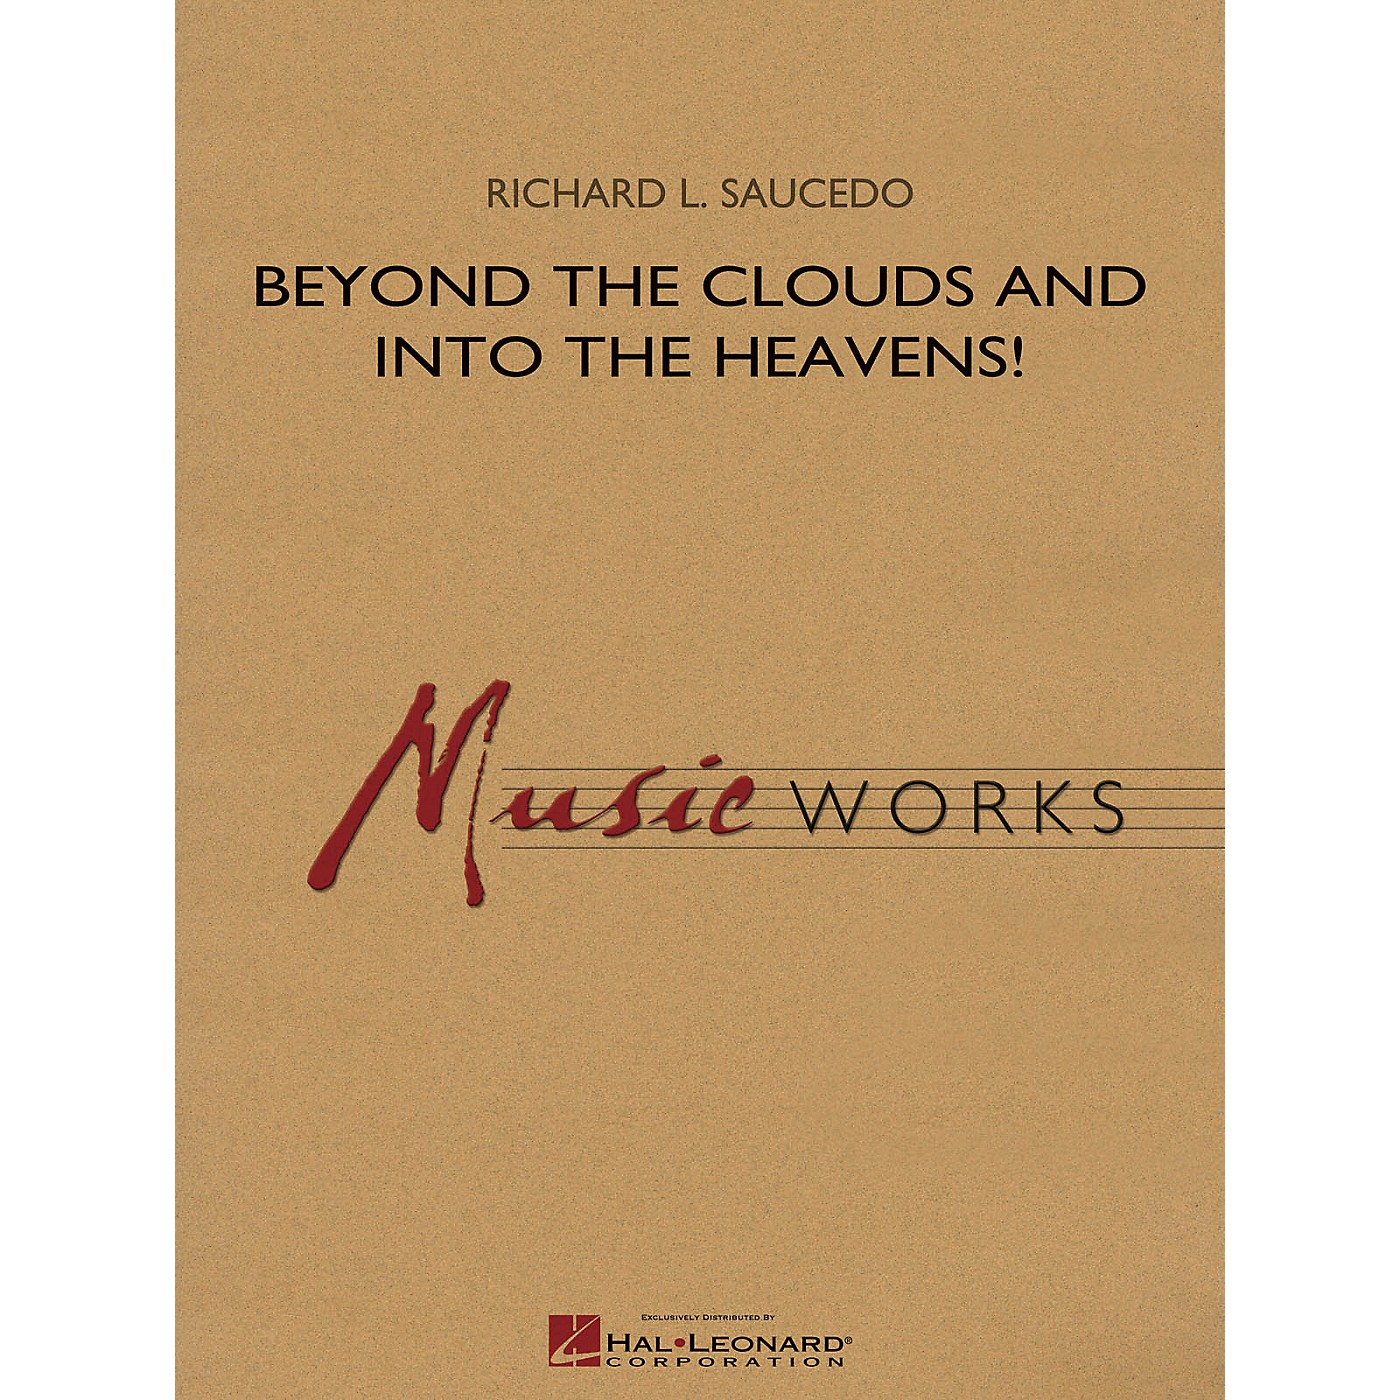 Hal Leonard Beyond the Clouds and Into the Heavens! Concert Band Level 4 Composed by Richard L. Saucedo thumbnail